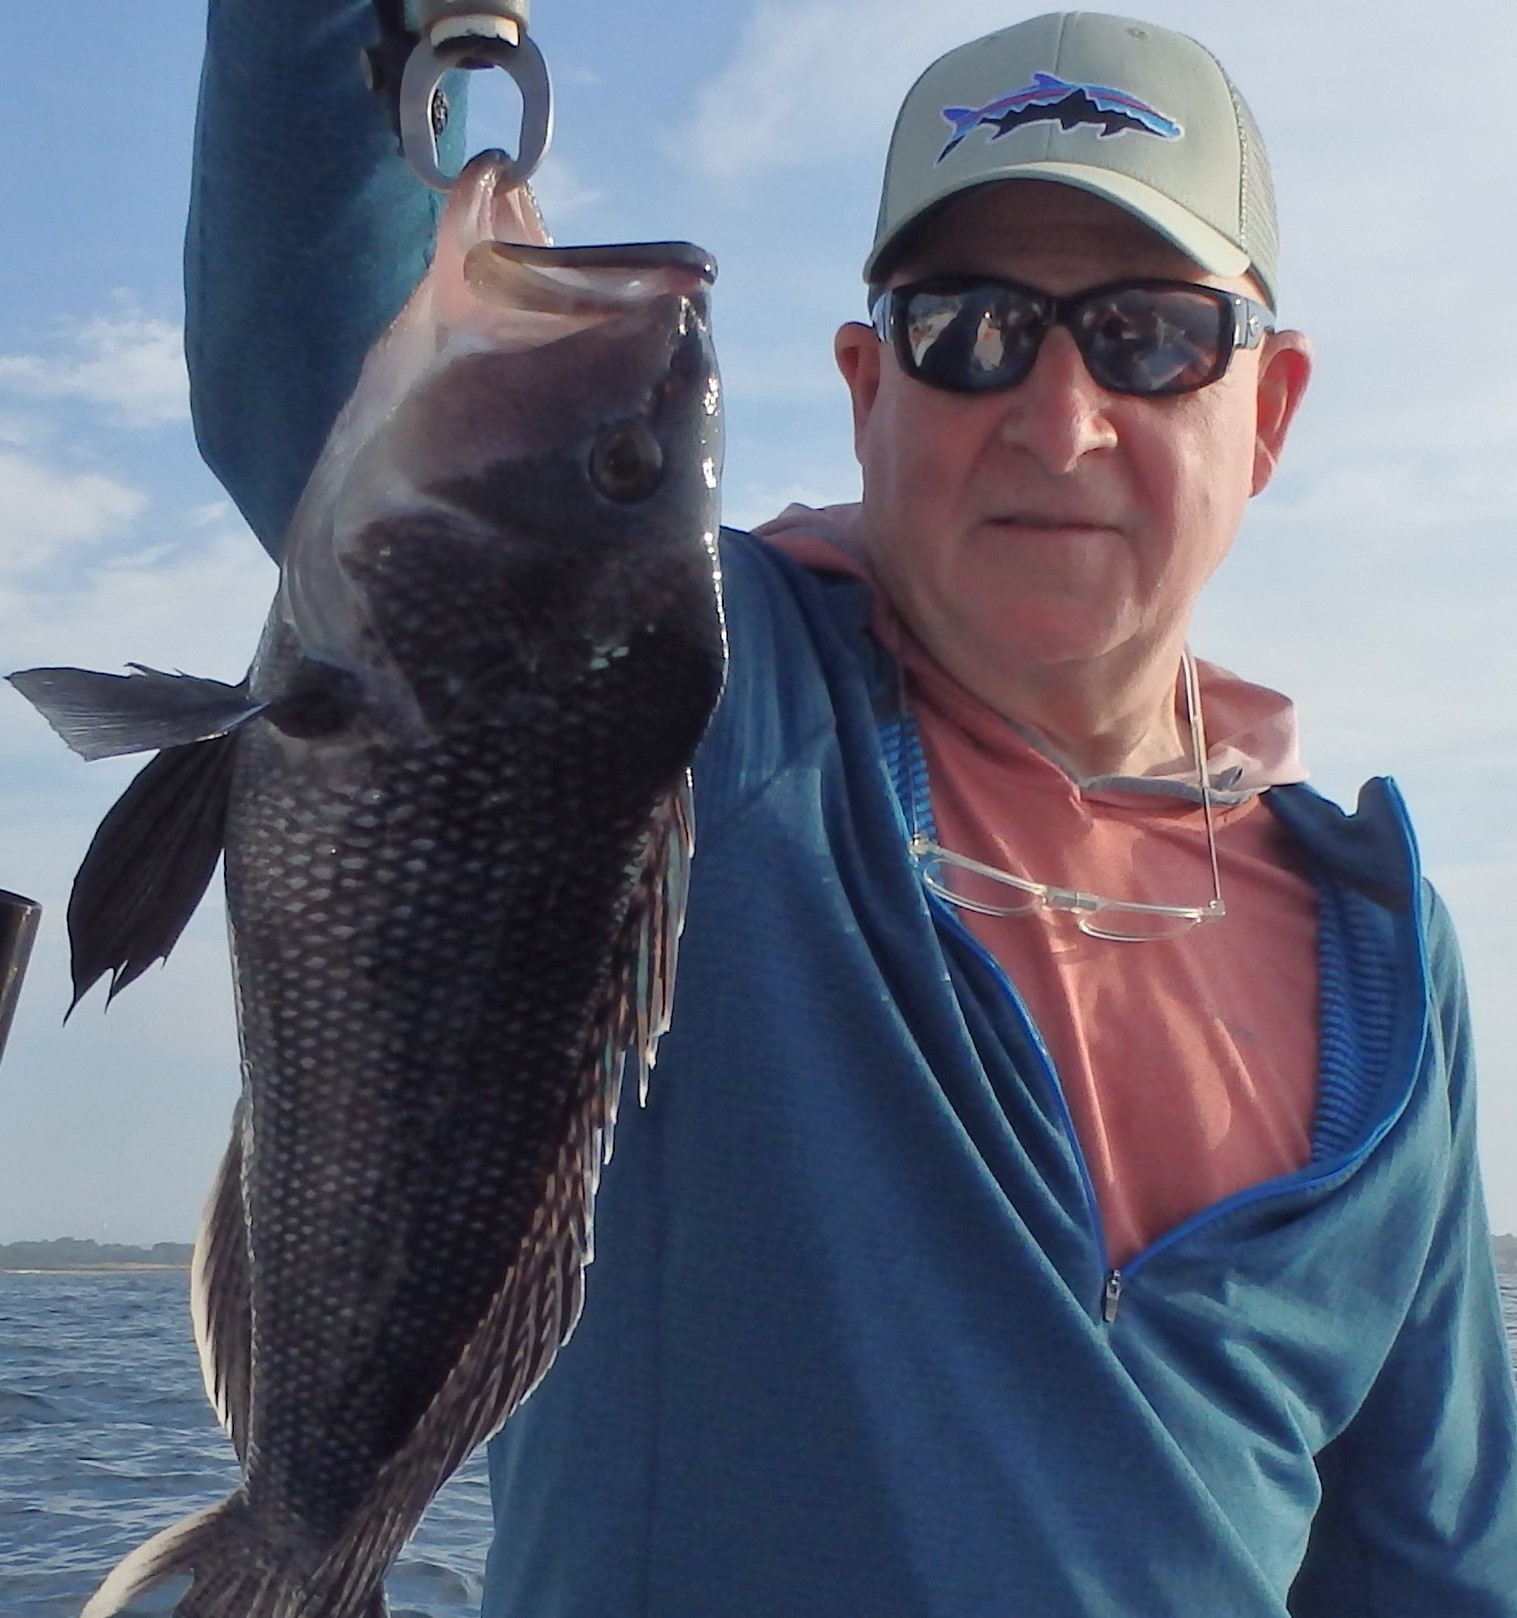 Tom Sadler of Virginia caught his first black sea bass keeper (20 inches) when fishing off Newport earlier this week.